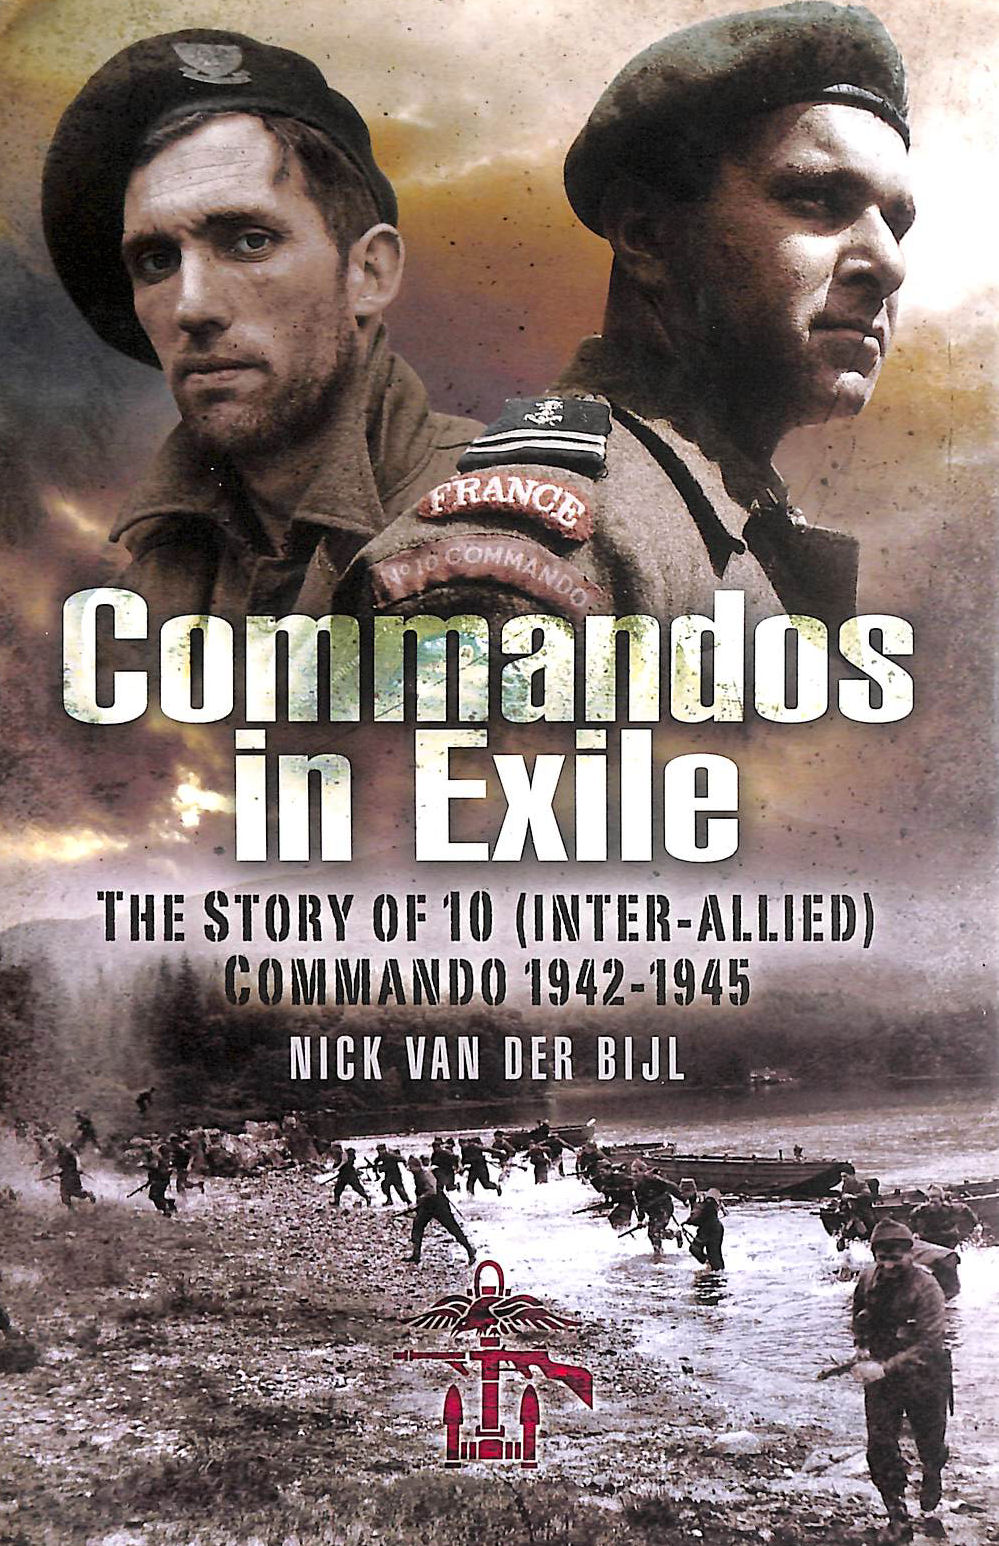 Image for Commandos in Exile: The Story of 10 (Inter-Allied) Commando 1942-1945